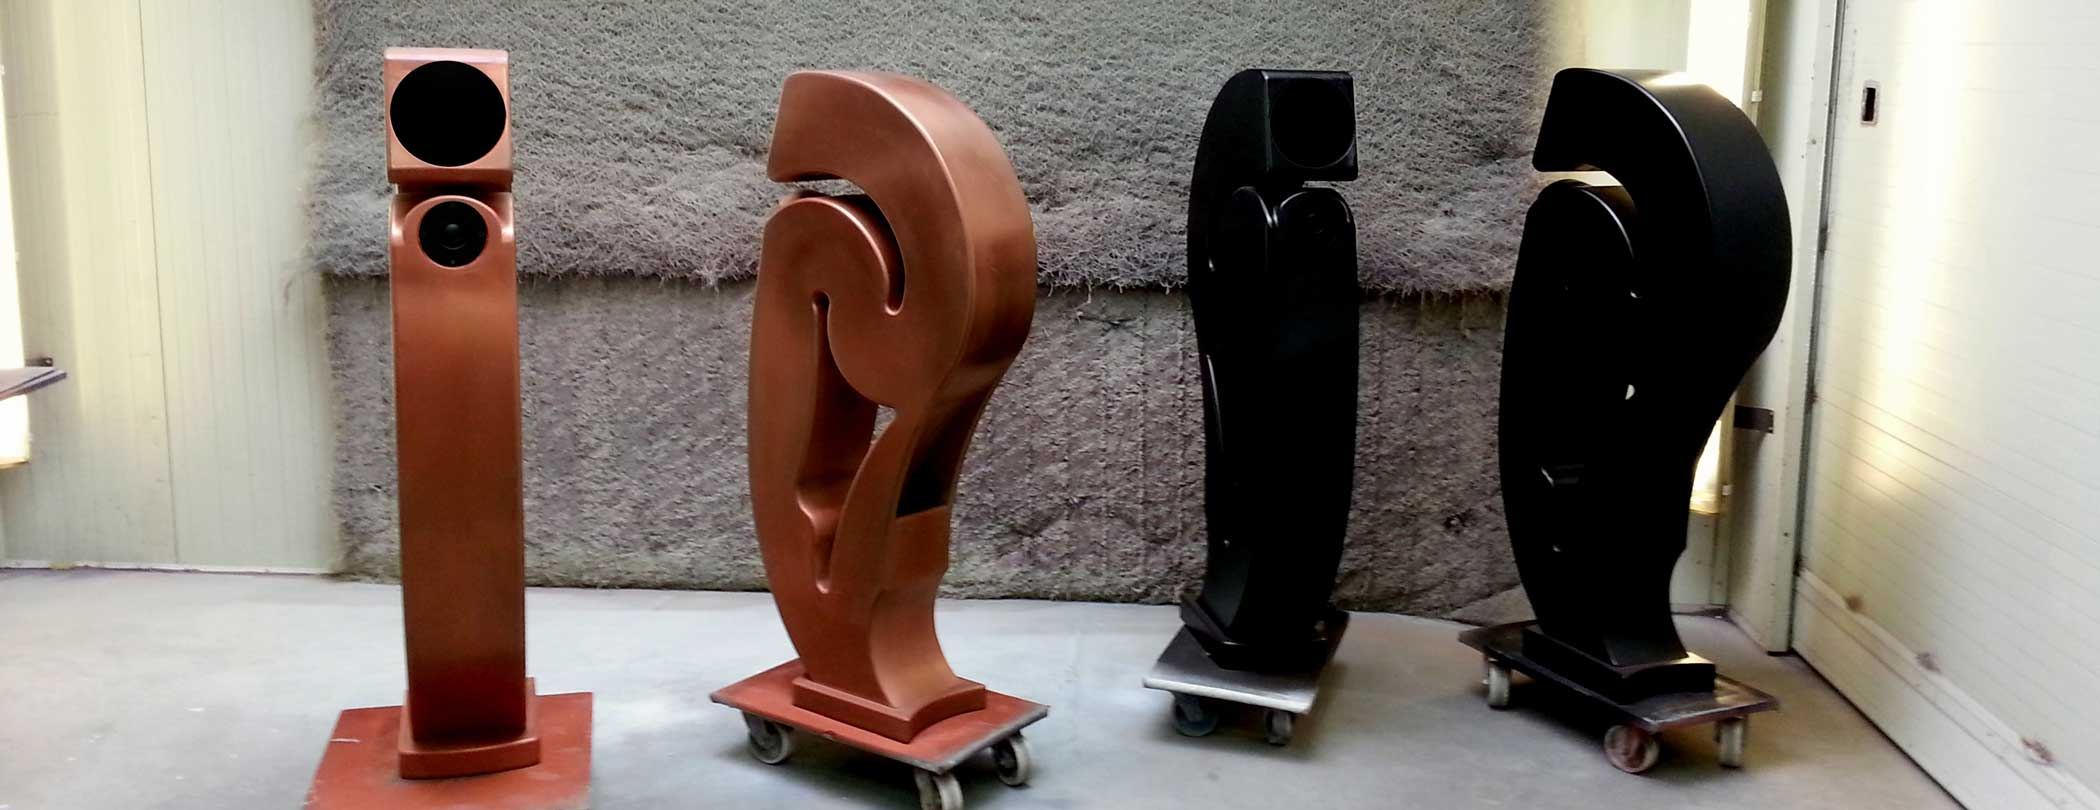 The true copper speakers, and the matte black speakers from Scheek are just finished.